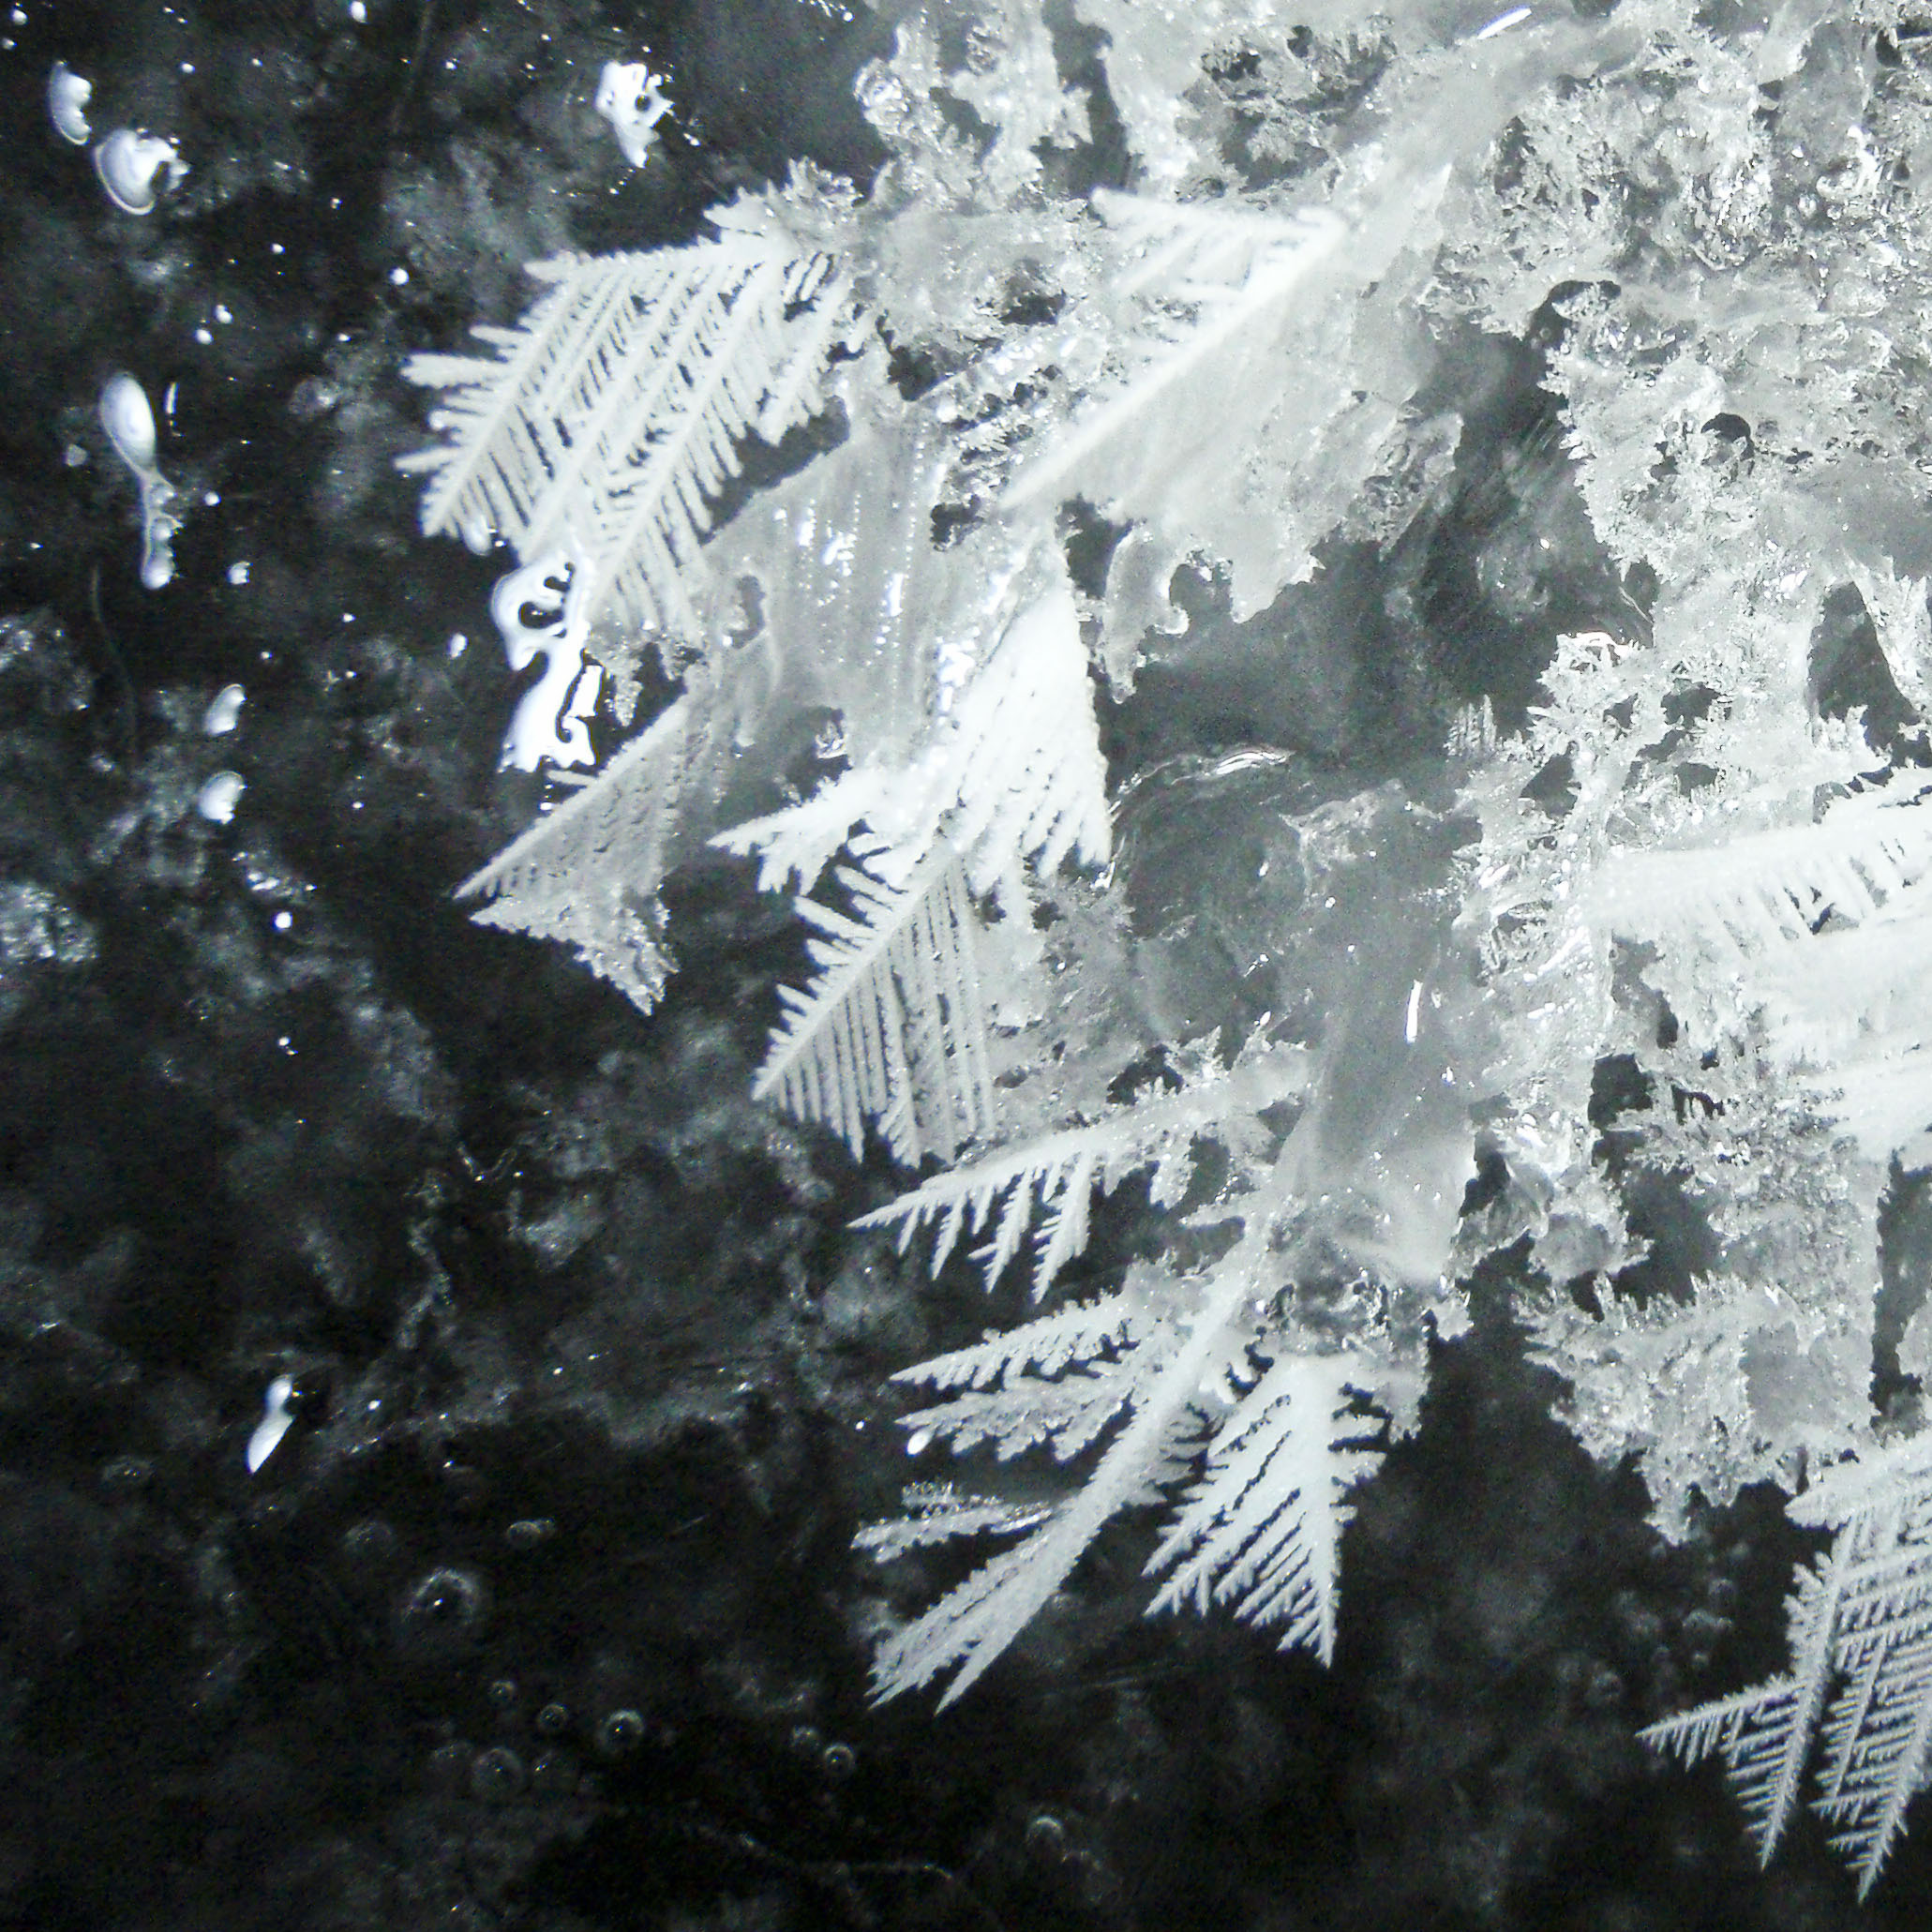 Frost flowers grown in a lab.